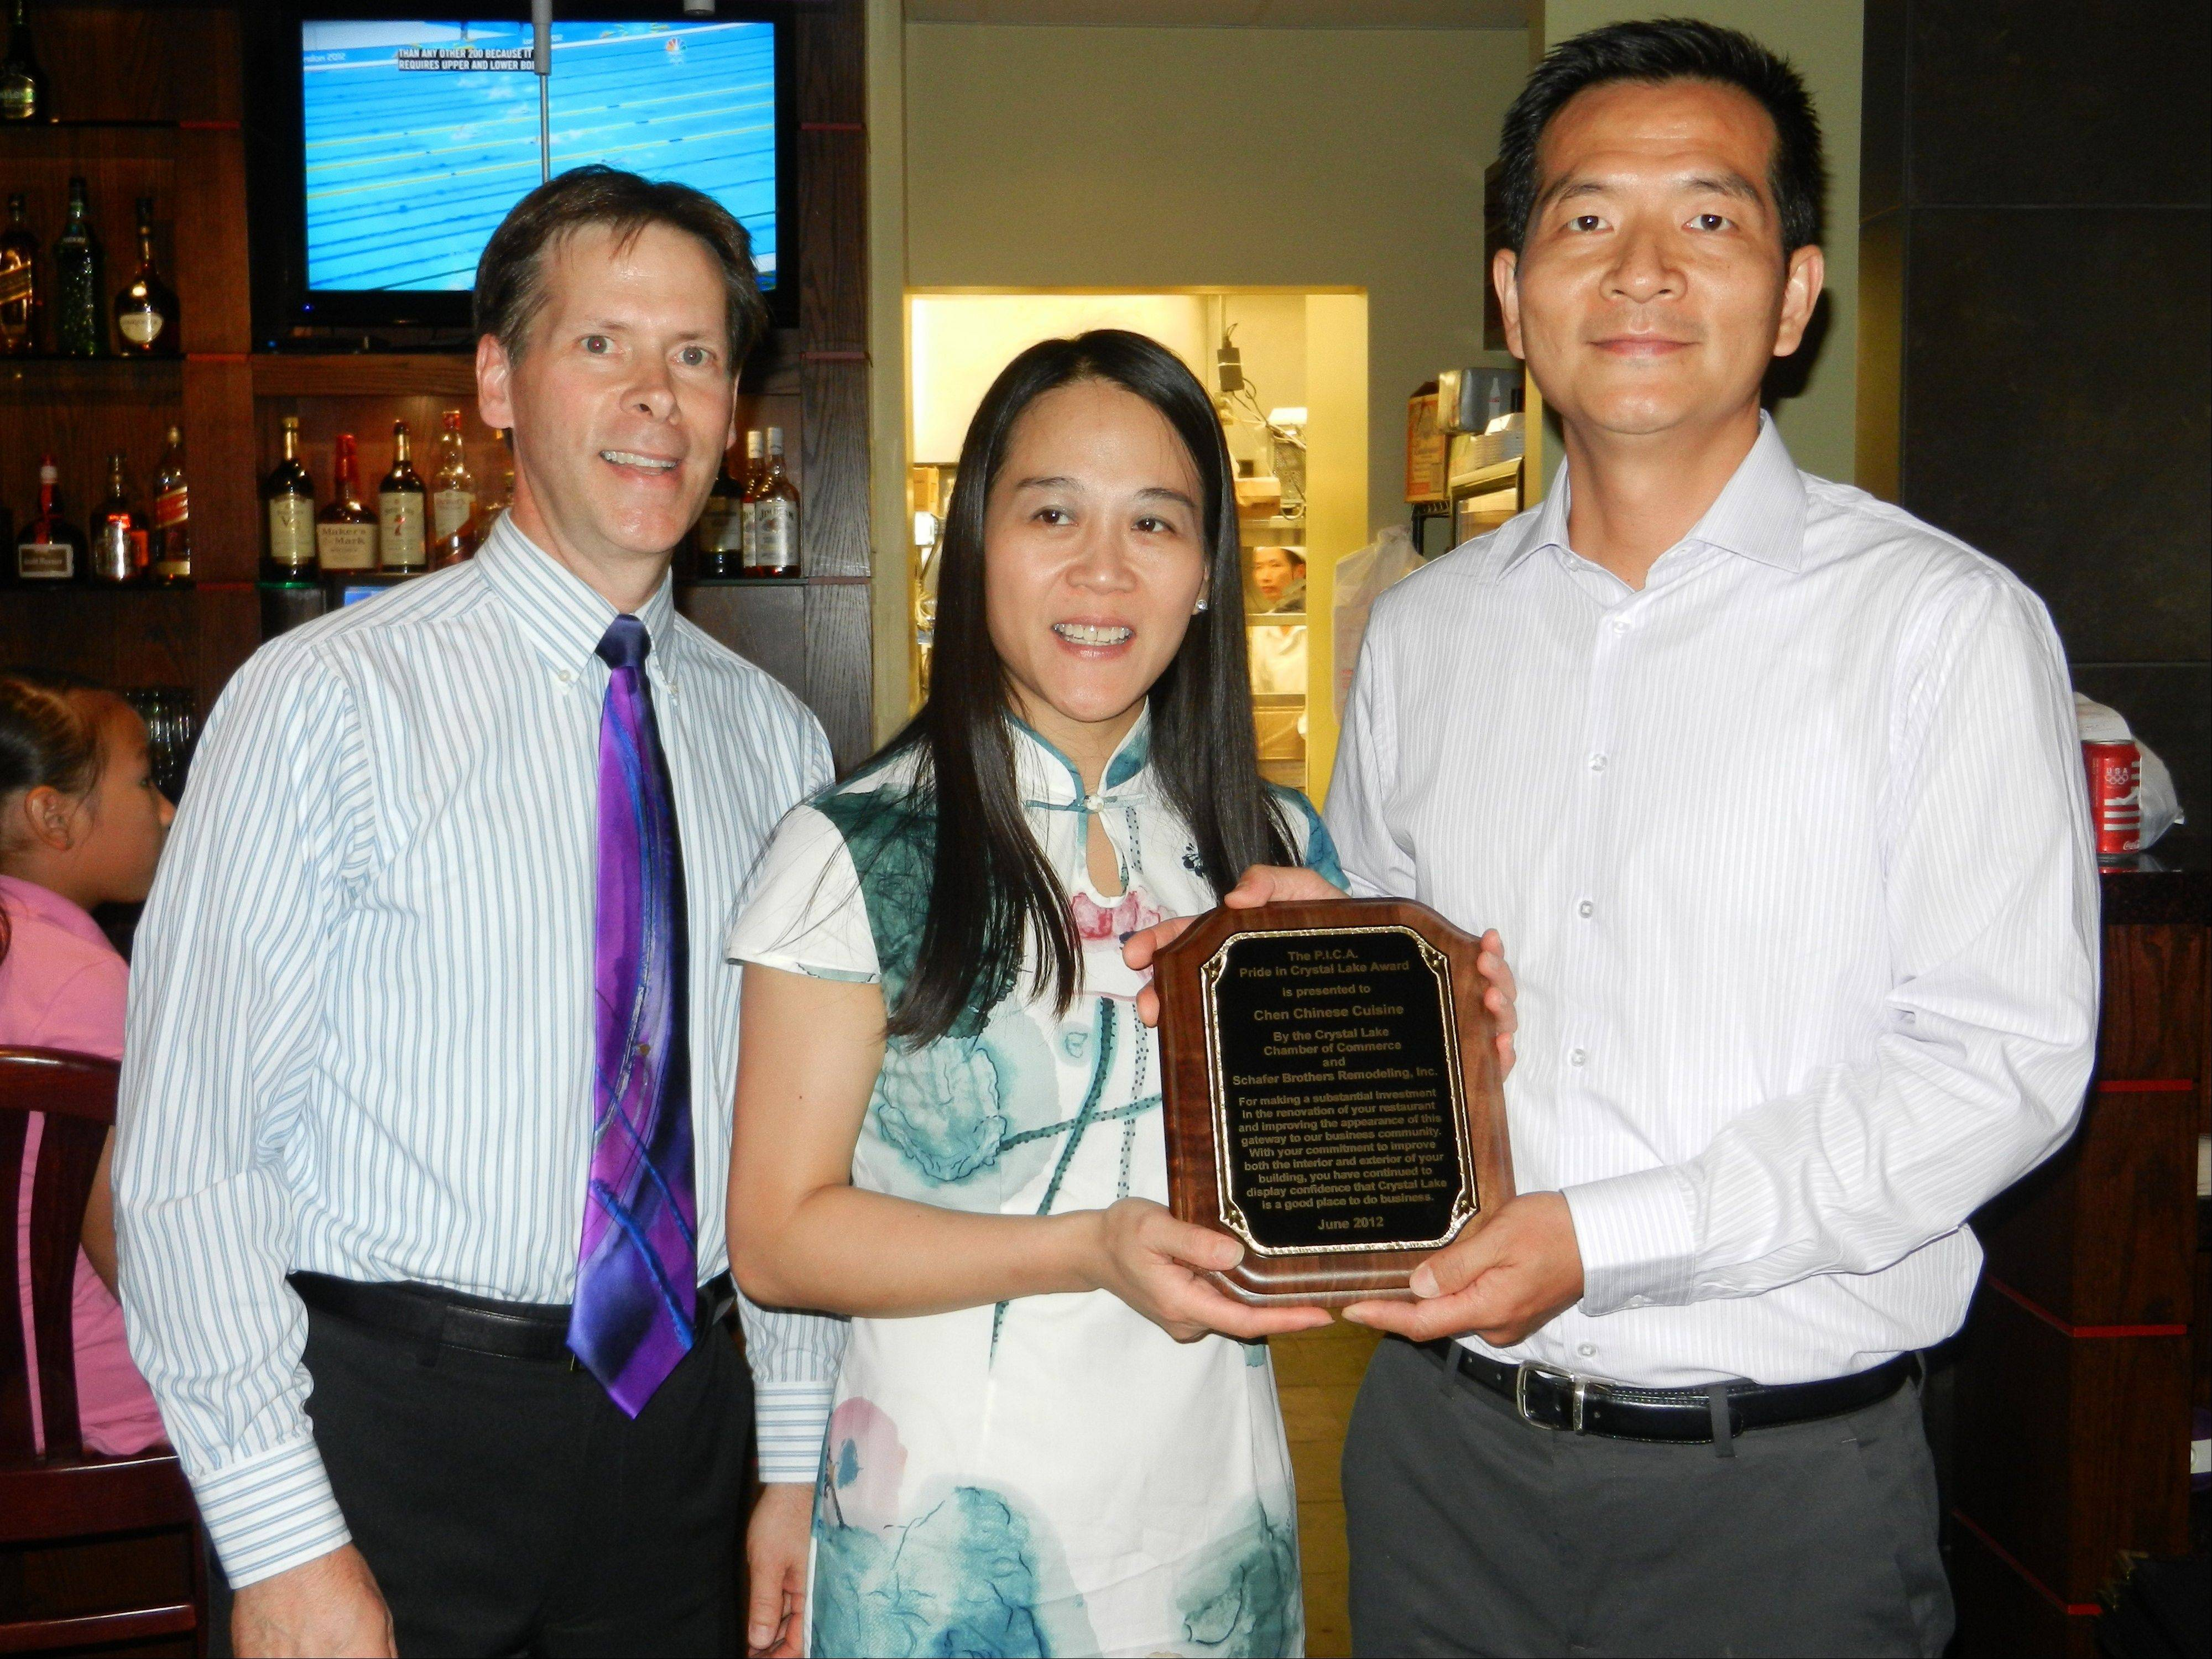 Gary Reece, from left, Suya Chen and Ming Chen.